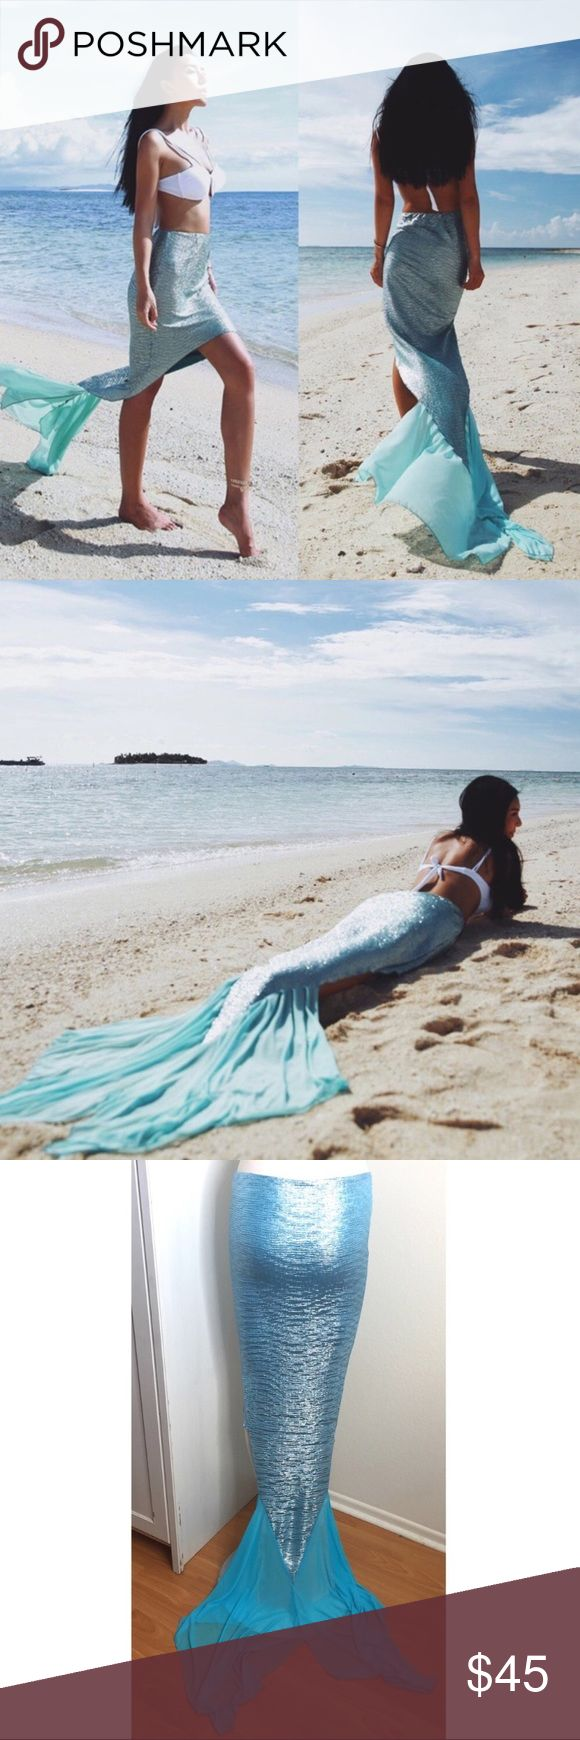 """Mermaid Sarong/ Skirt Cute skirt/ beach cover up in the shape of a mermaid tail. Perfect for the beach, pool party, or even a festival! Back: about 41.5"""" in length not including the sheer tail portion, 60.5"""" including tail. Front: 15"""" in length. About 9-9.5"""" (19"""" waist) top of skirt not stretched. Top of skirt can stretch up to 16"""" (34"""" waist). Measurements taken manually, please allow 1-3% variance. Can probably fit Jean size 23"""" to 29"""". Please compare your measurements before purchasing…"""